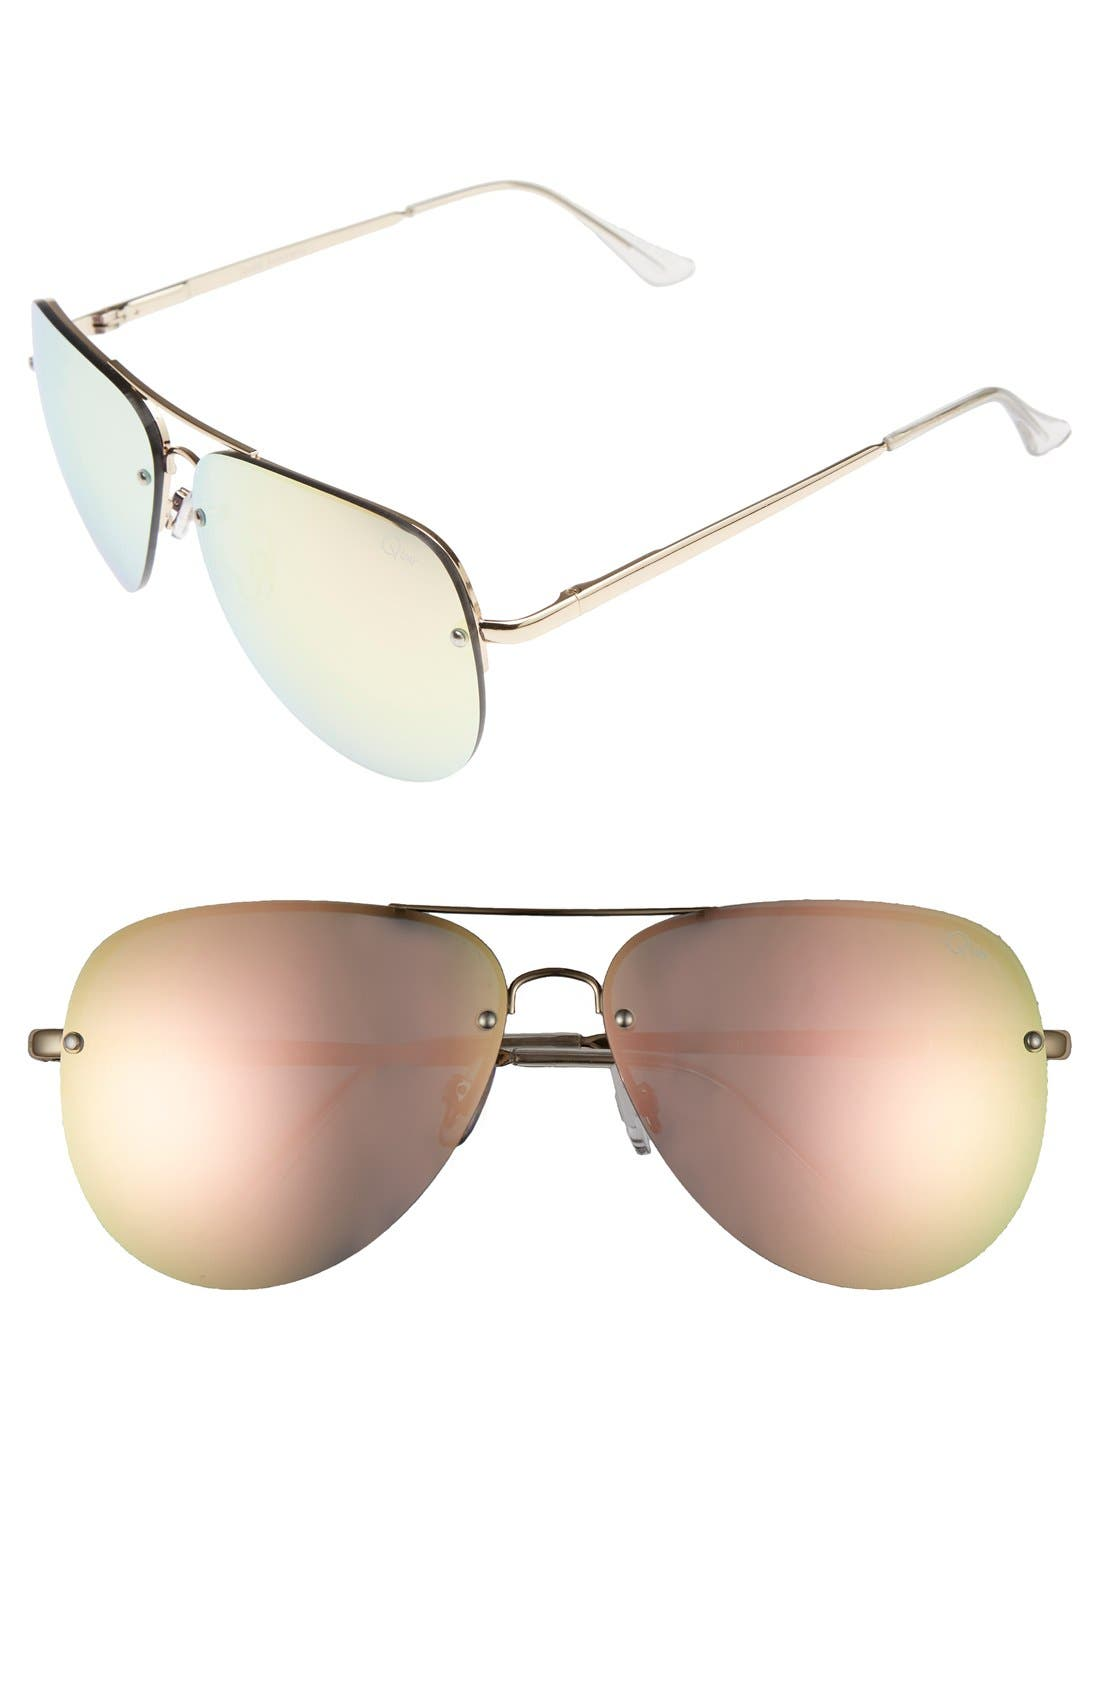 Quay Australia 'Muse' 65mm Mirrored Aviator Sunglasses